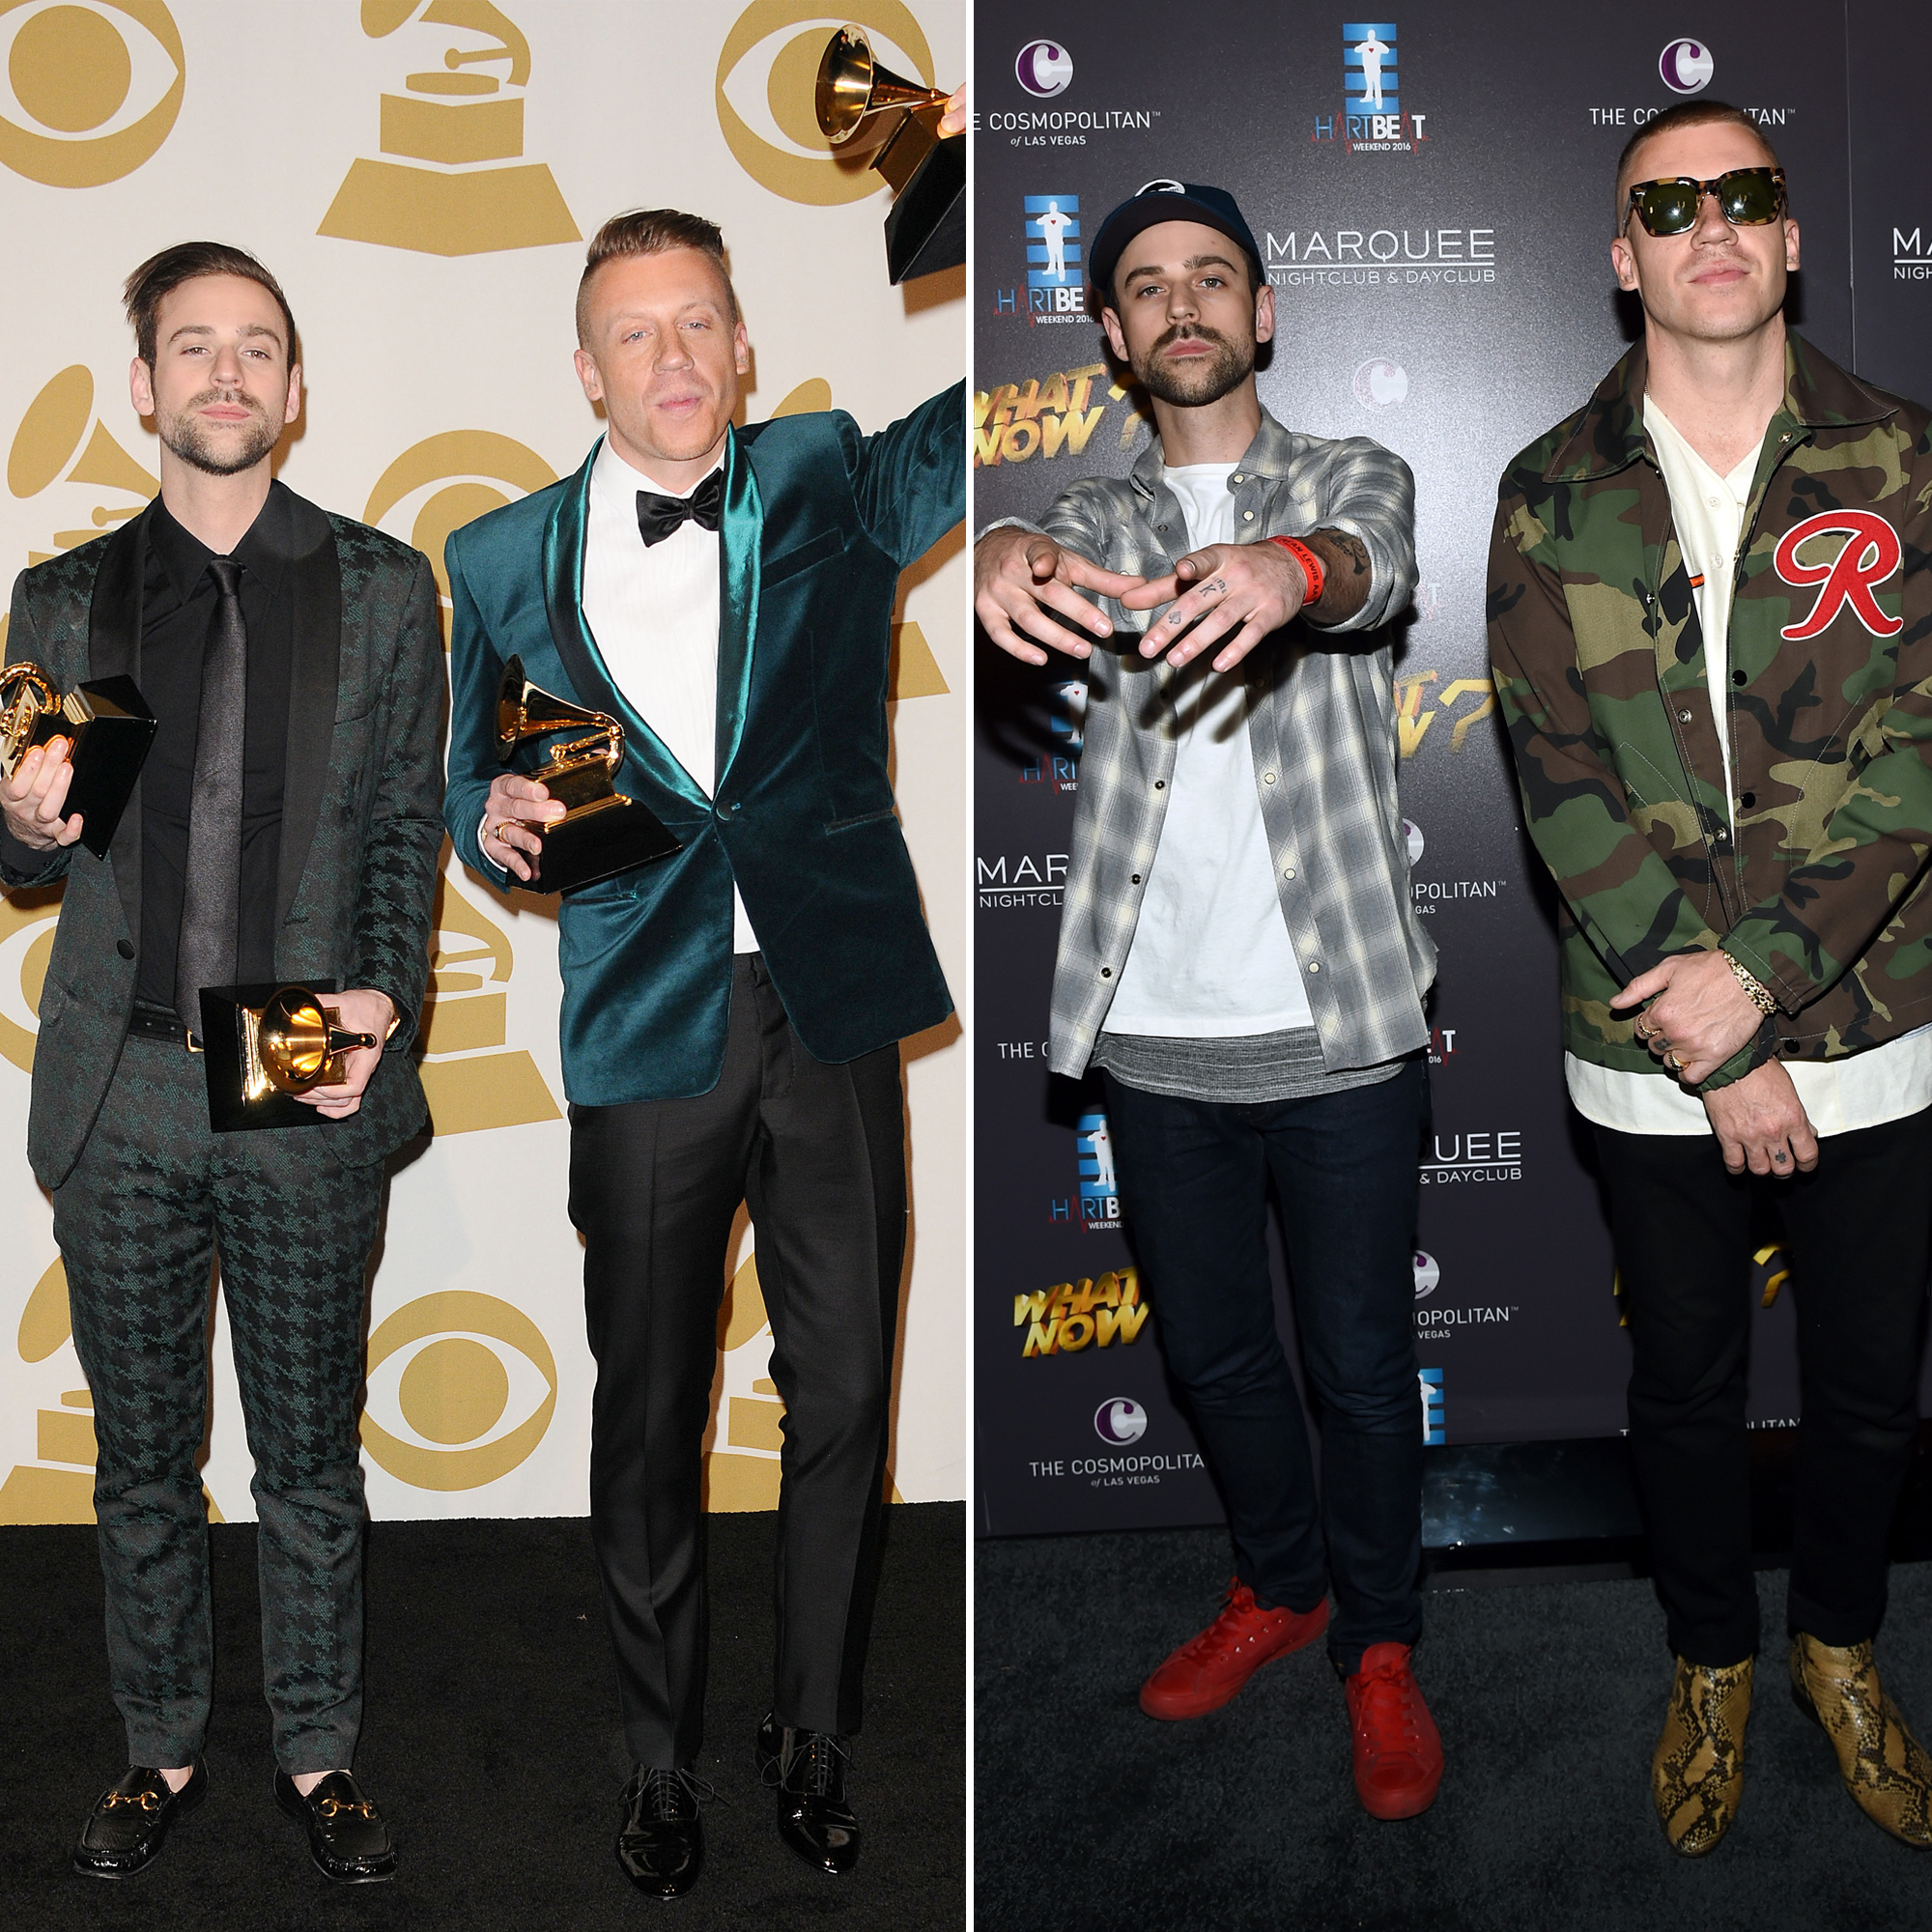 Best New Artist Grammy Winners Where Are They Now - Who They Beat: James Blake, Kendrick Lamar, Kacey Musgraves, Ed Sheeran Where Are They Now: After winning four Grammy Awards — including Best New Artist — in 2014, Macklemore & Ryan Lewis spent the next two years working on their second album, The Unruly Mess I've Made. In 2017, Macklemore announced the duo were on hiatus and released his first solo album since 2005.